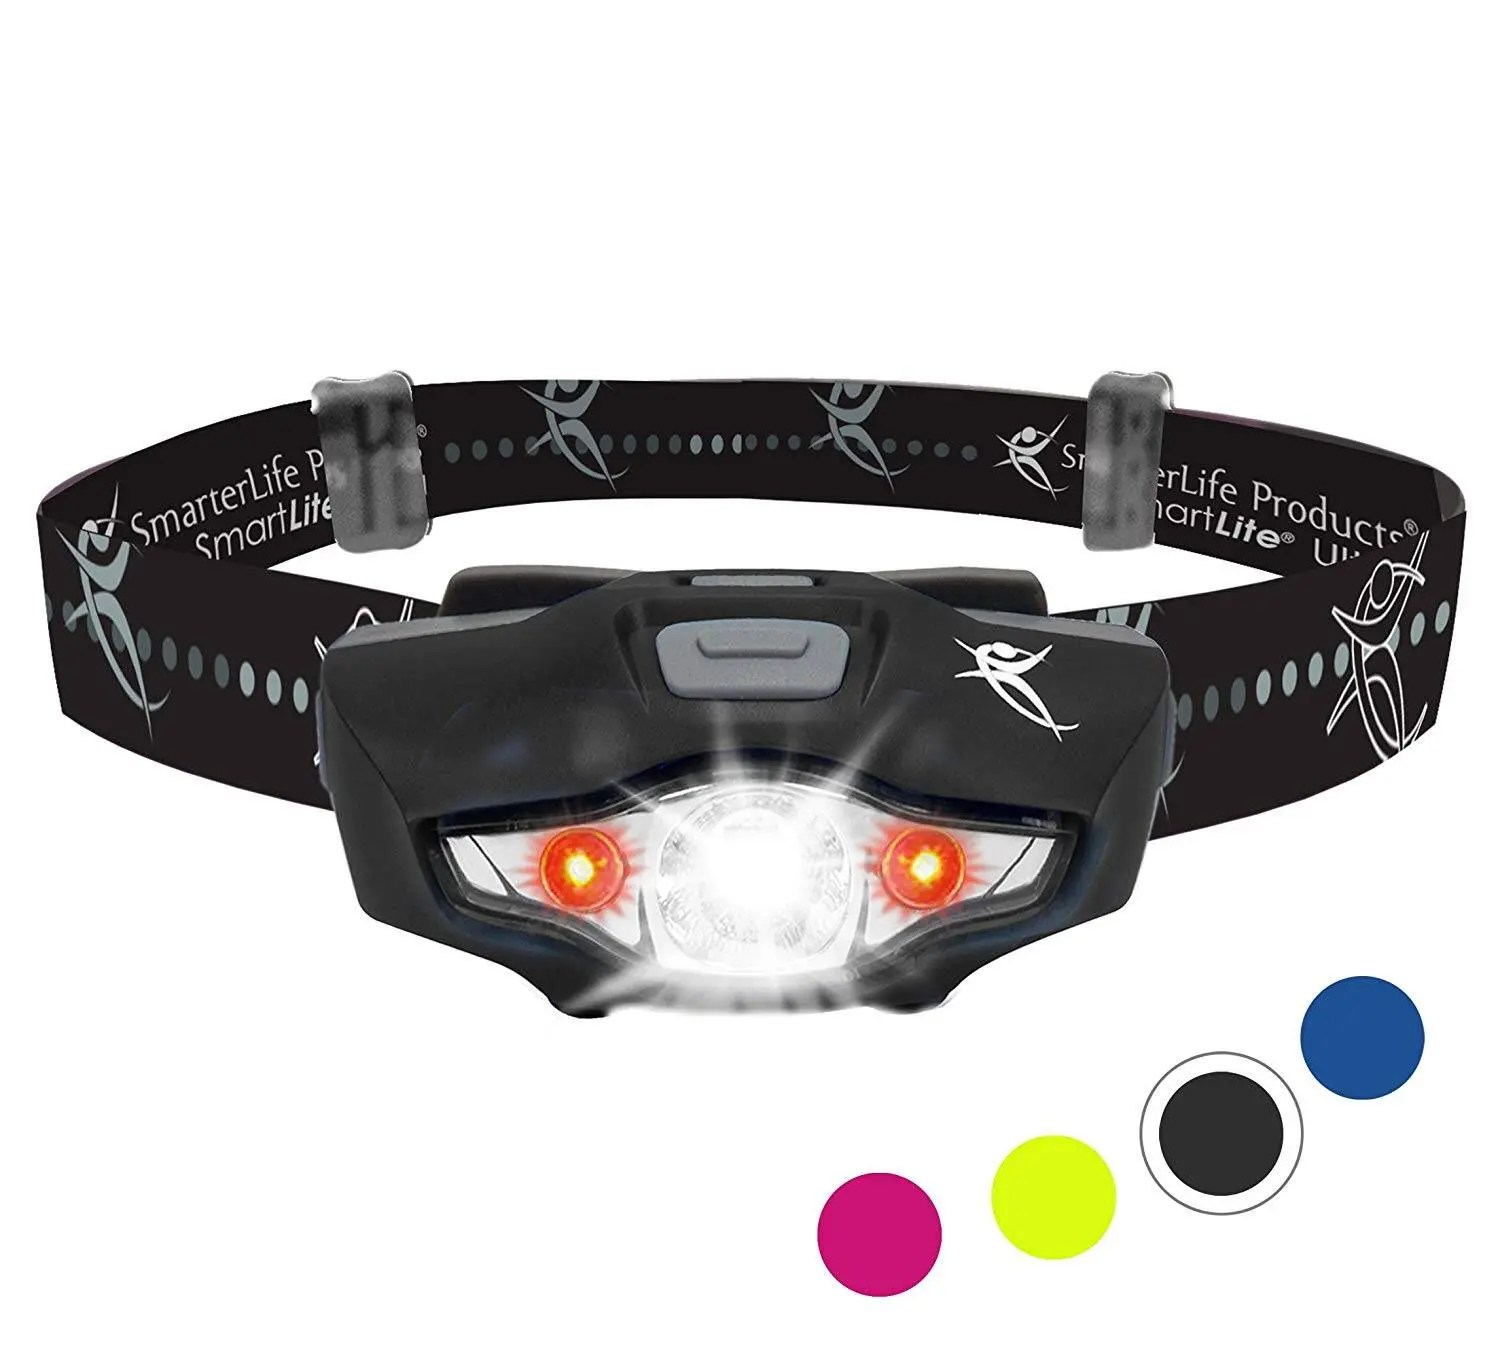 SmarterLife LED CREE Headlamp